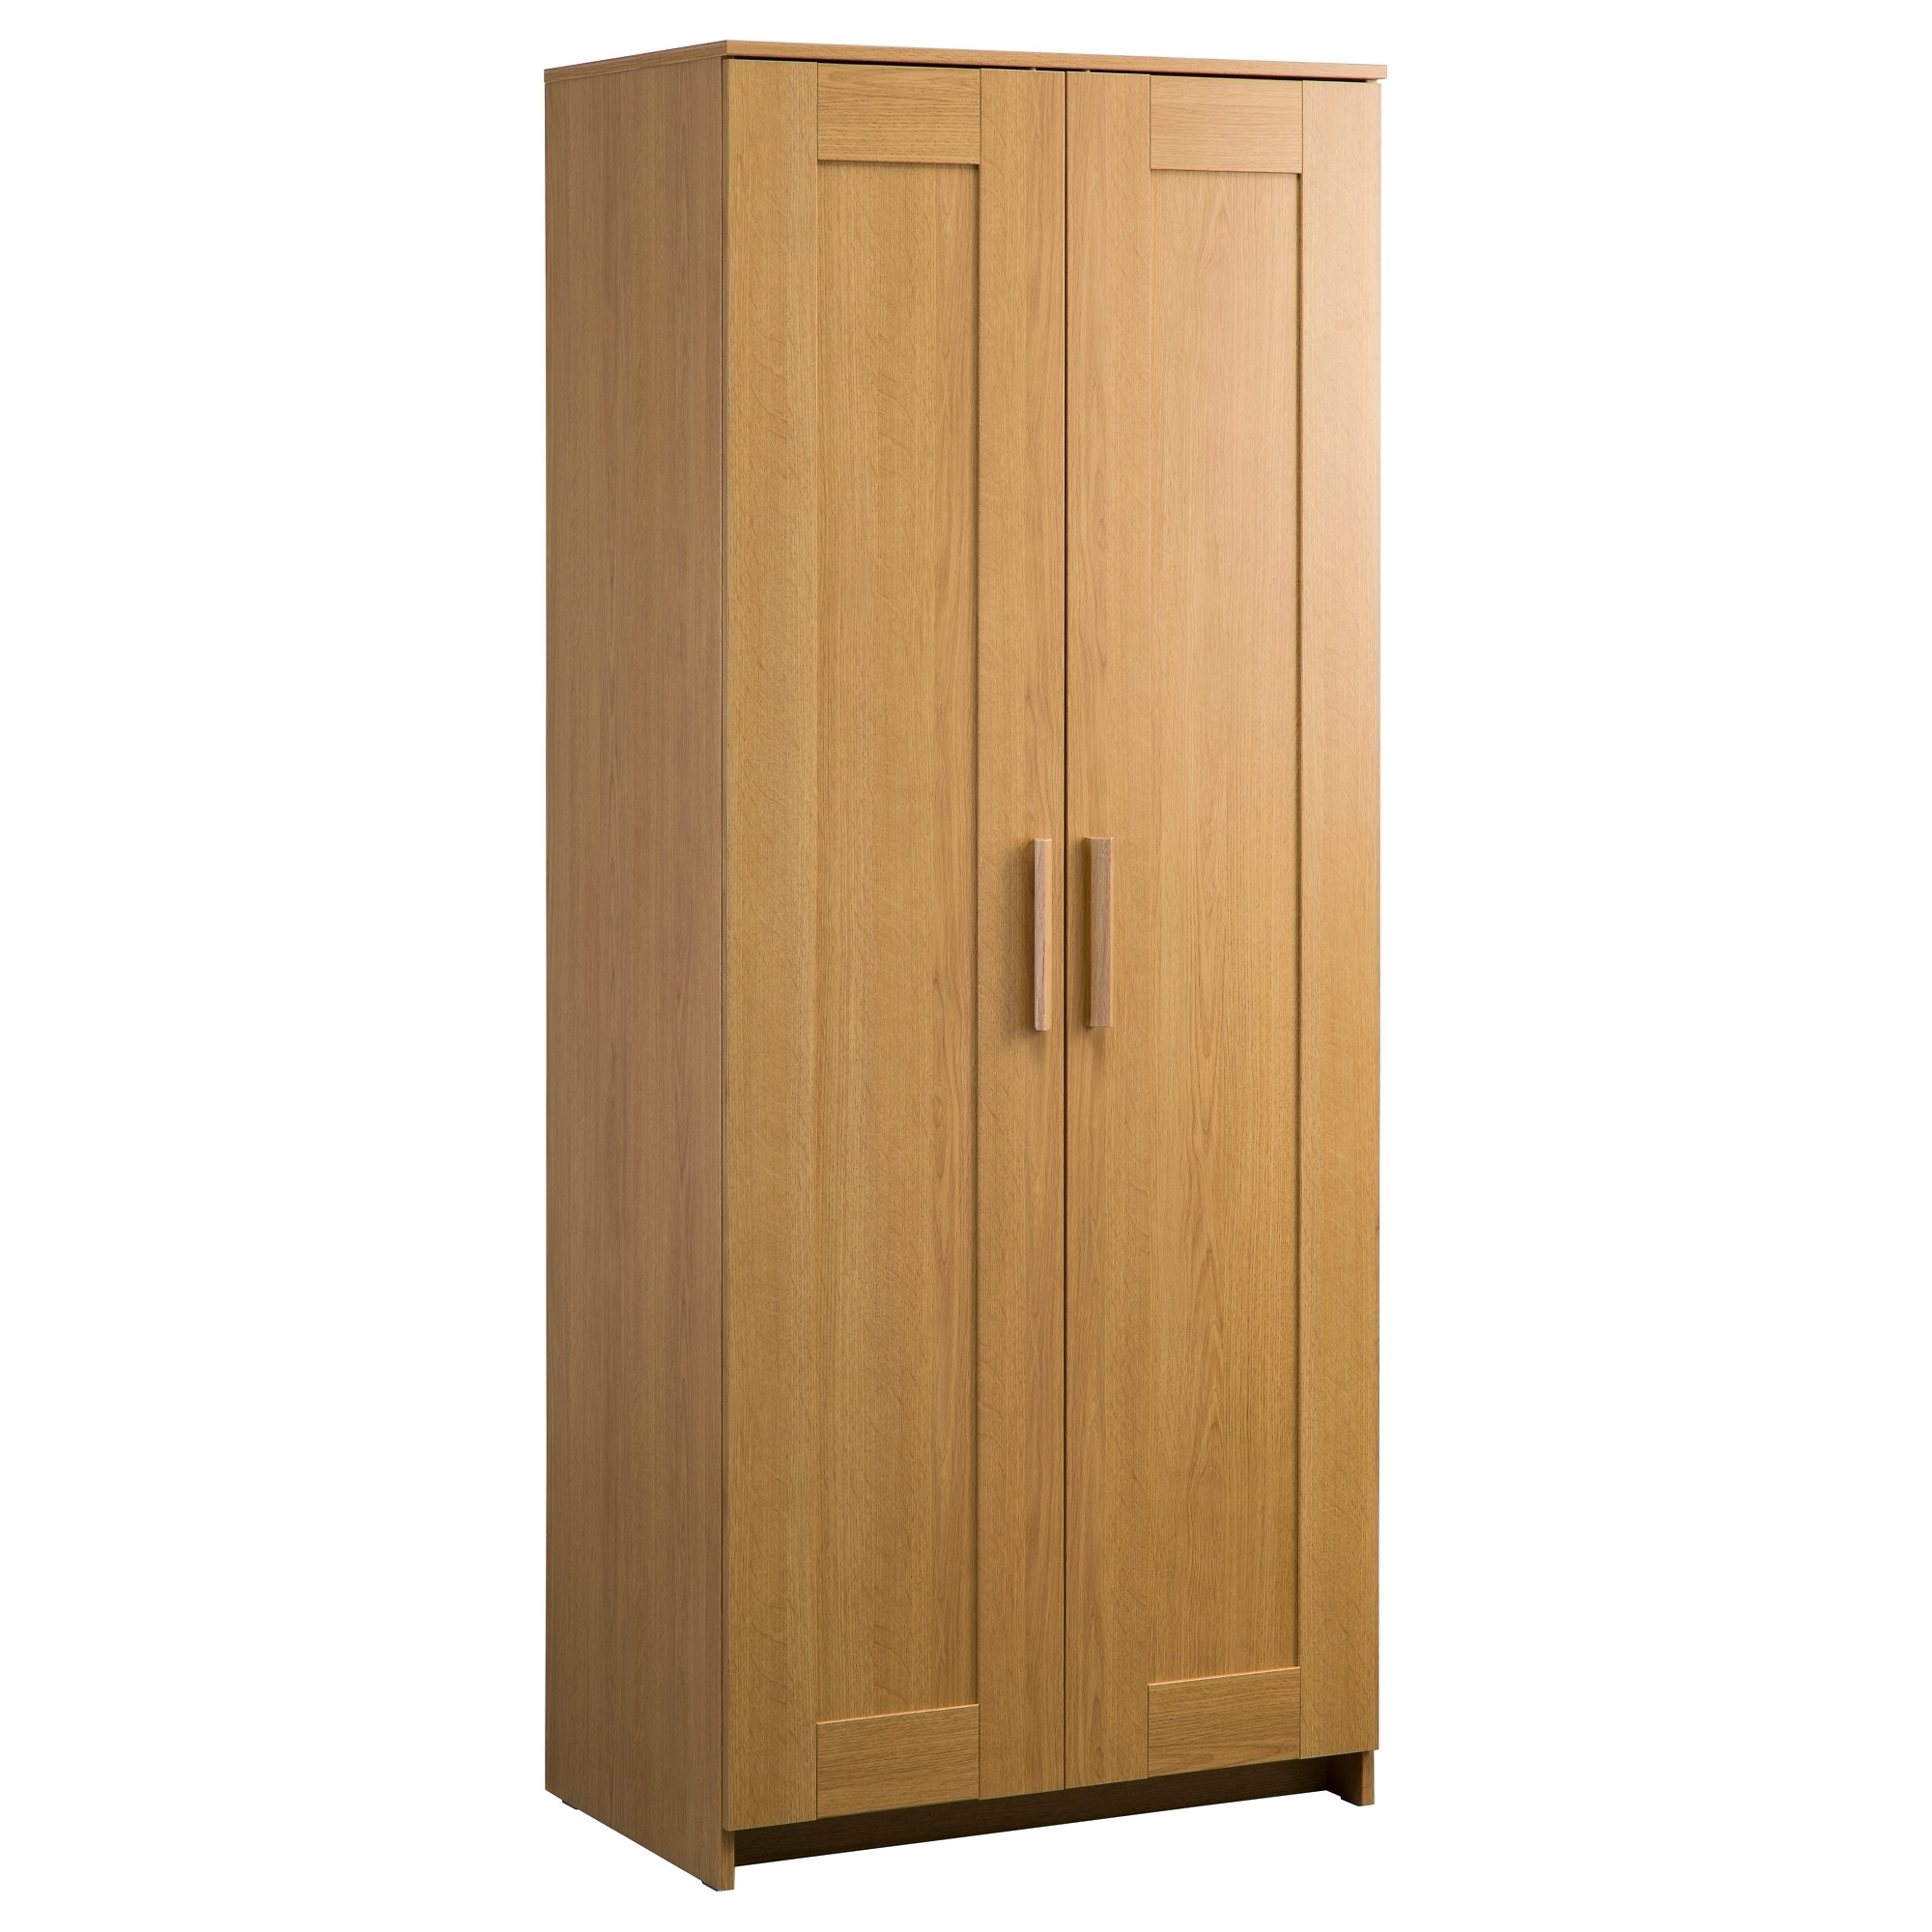 Trendy Brimnes Wardrobe With 3 Doors Oak Effect 117X190 Cm – Ikea With Oak Wardrobes For Sale (View 14 of 15)